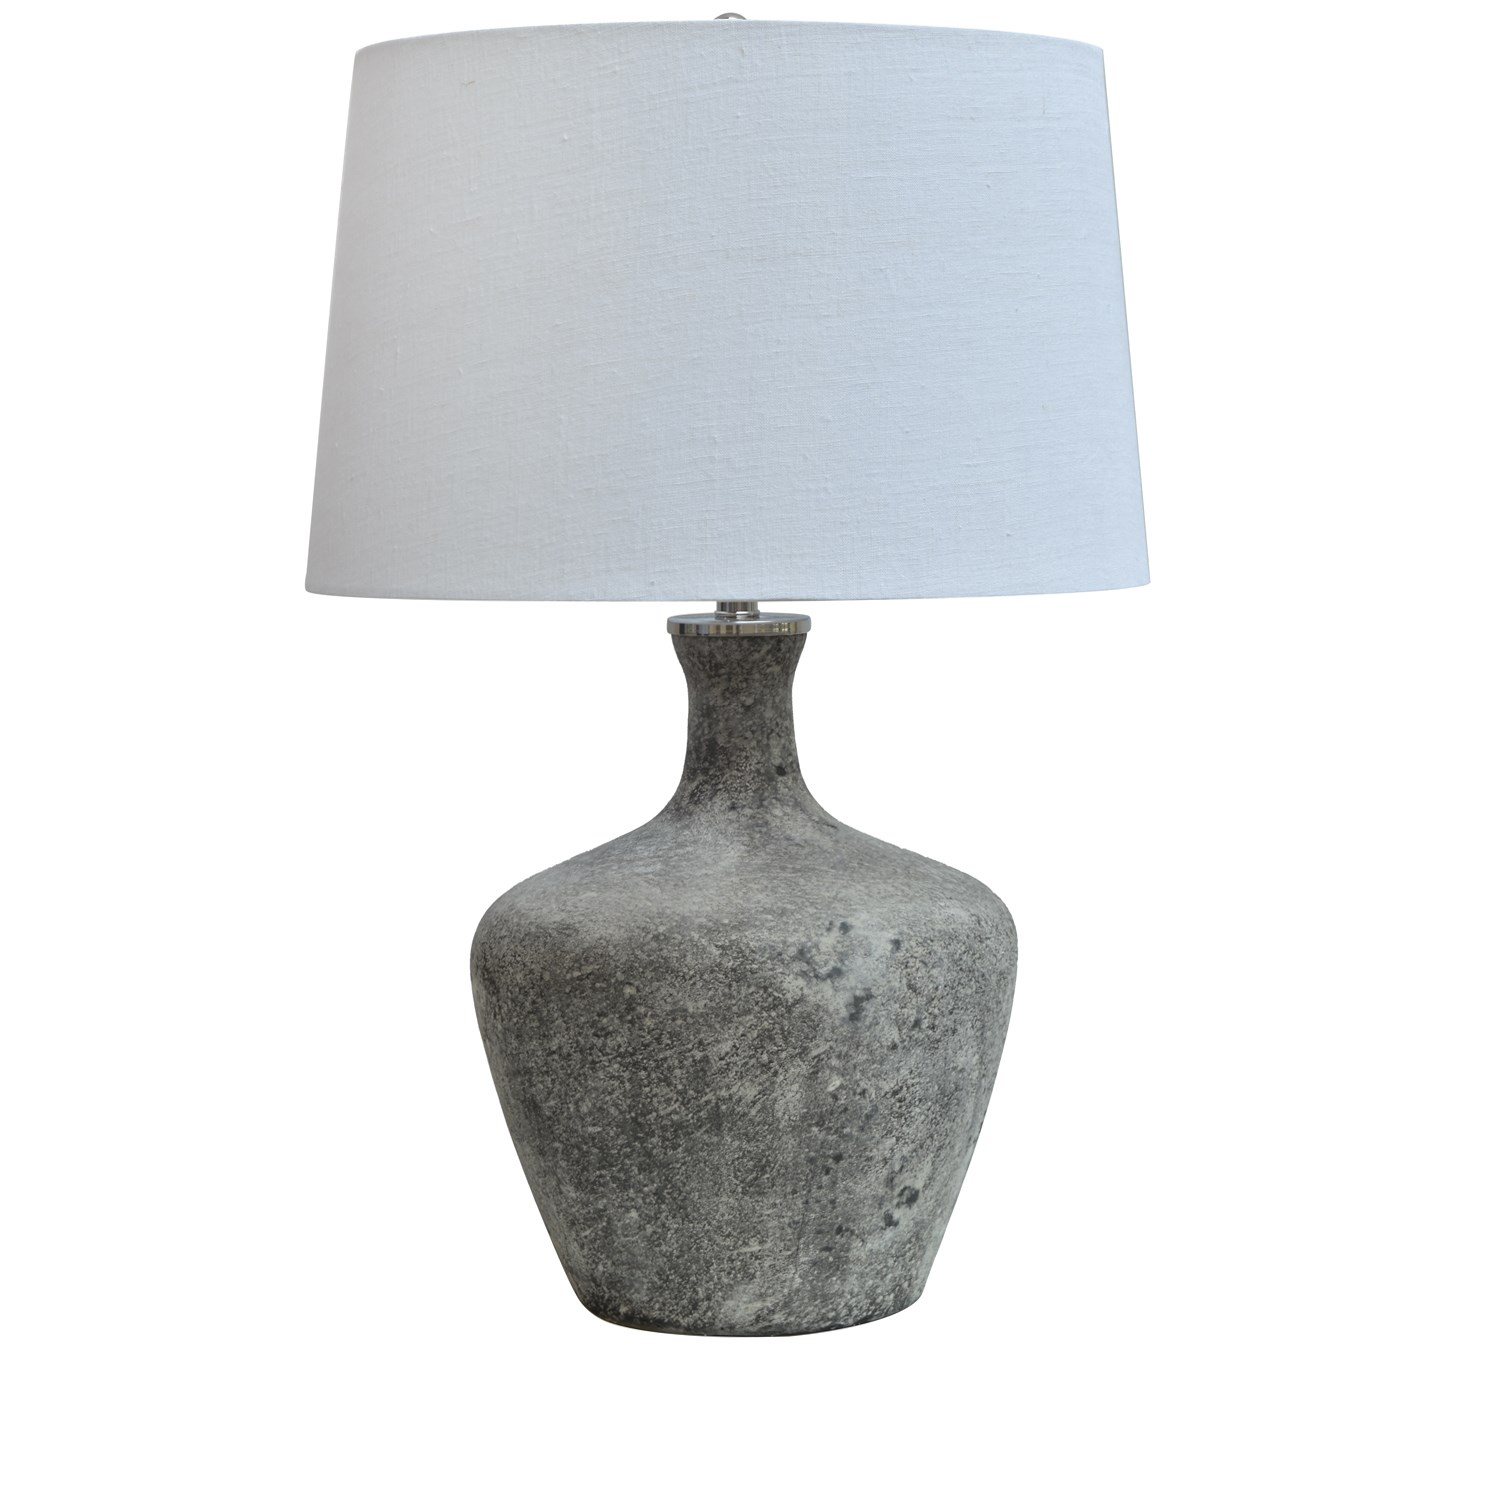 "Frosted Smoke Glass Table Lamp 28.5""H"